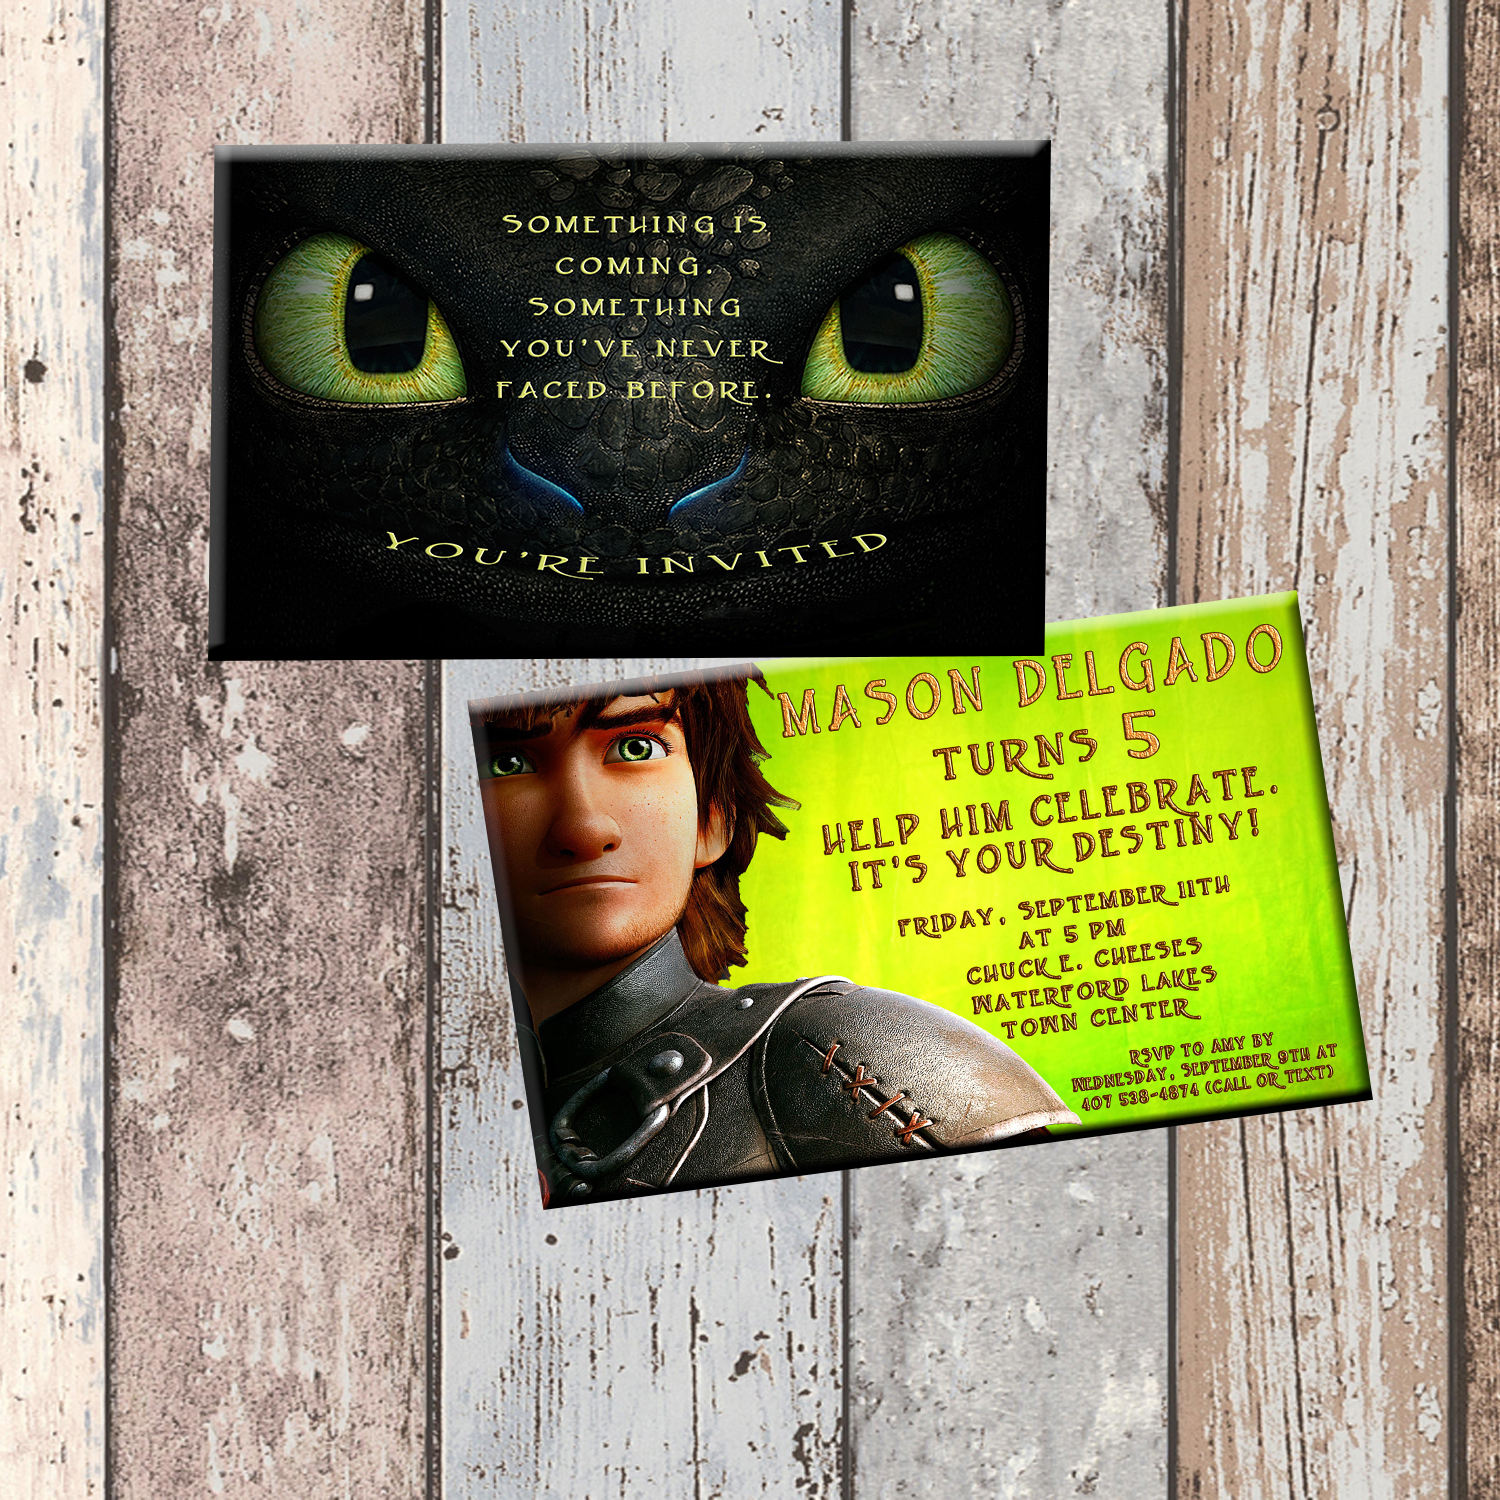 Toothless Dragon Personalized Birthday Invitation 2 Sided Card Party